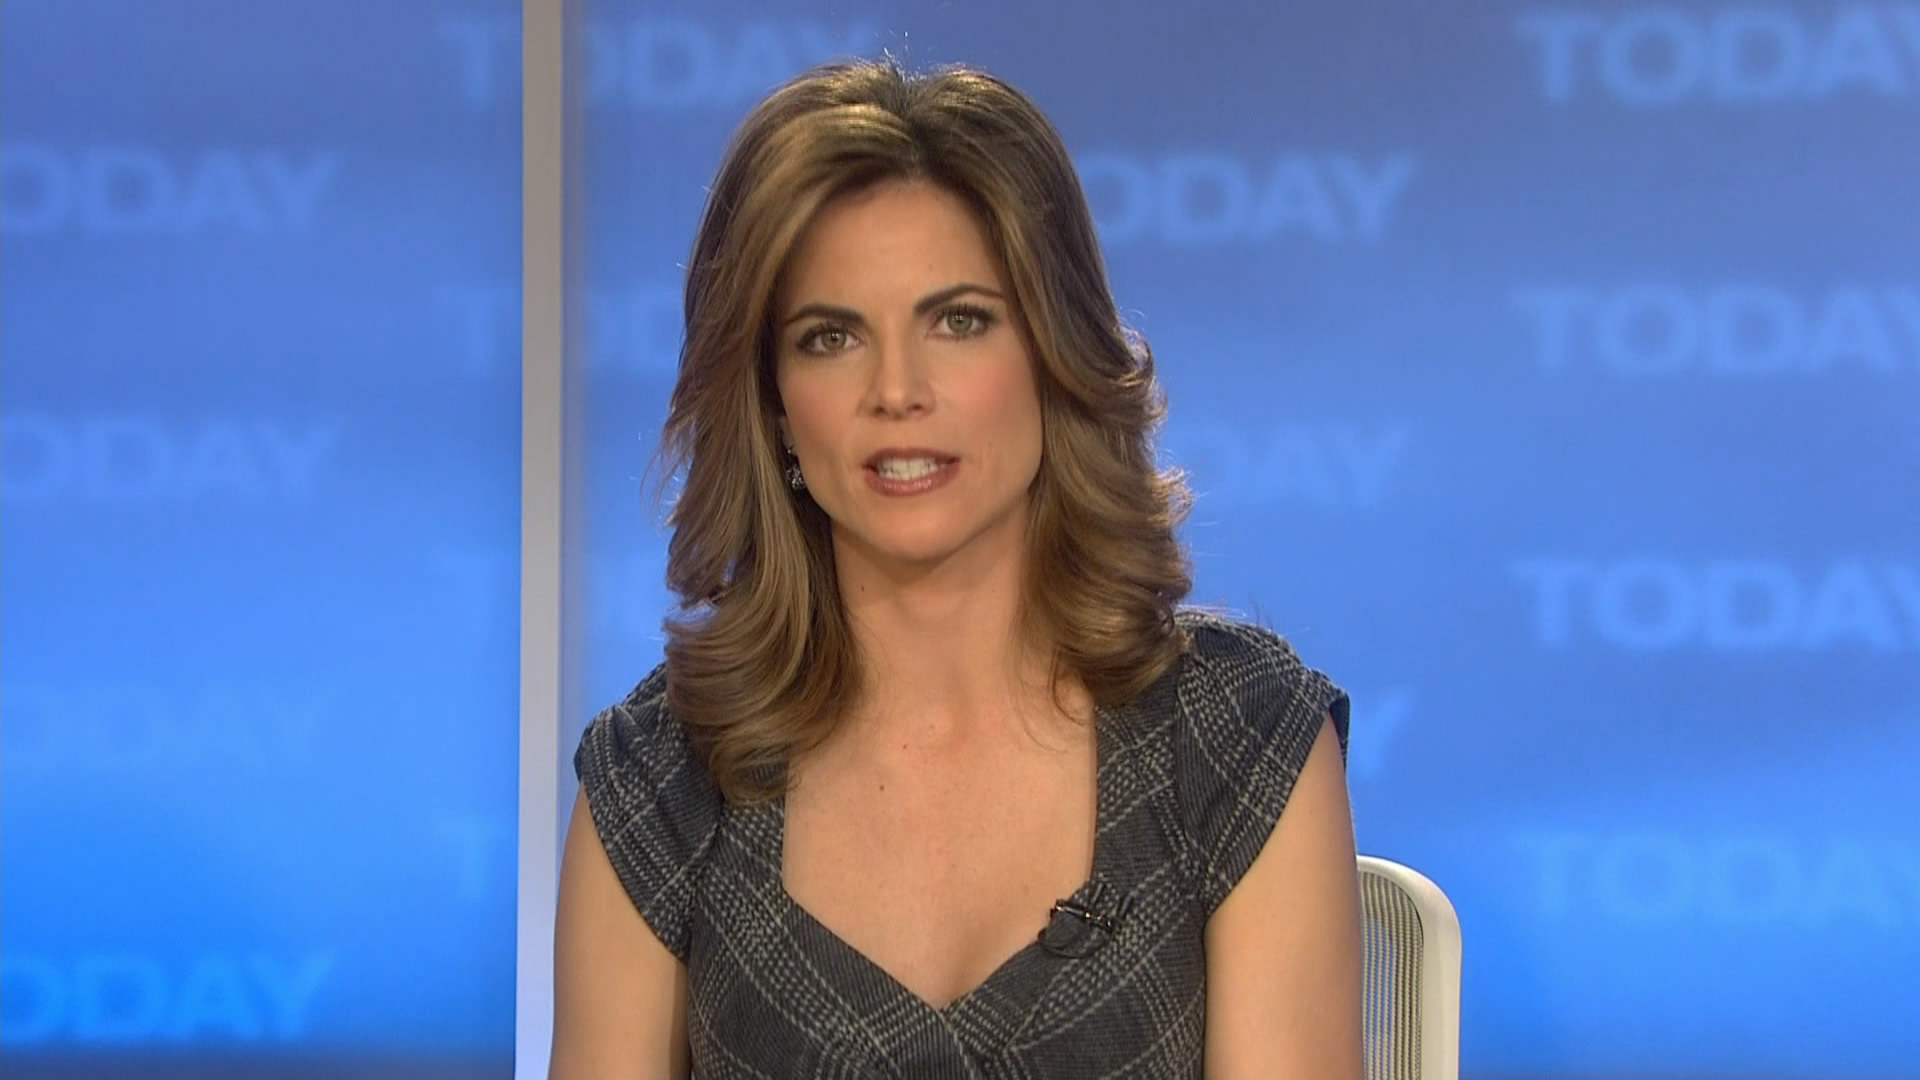 Natalie Morales Net Worth